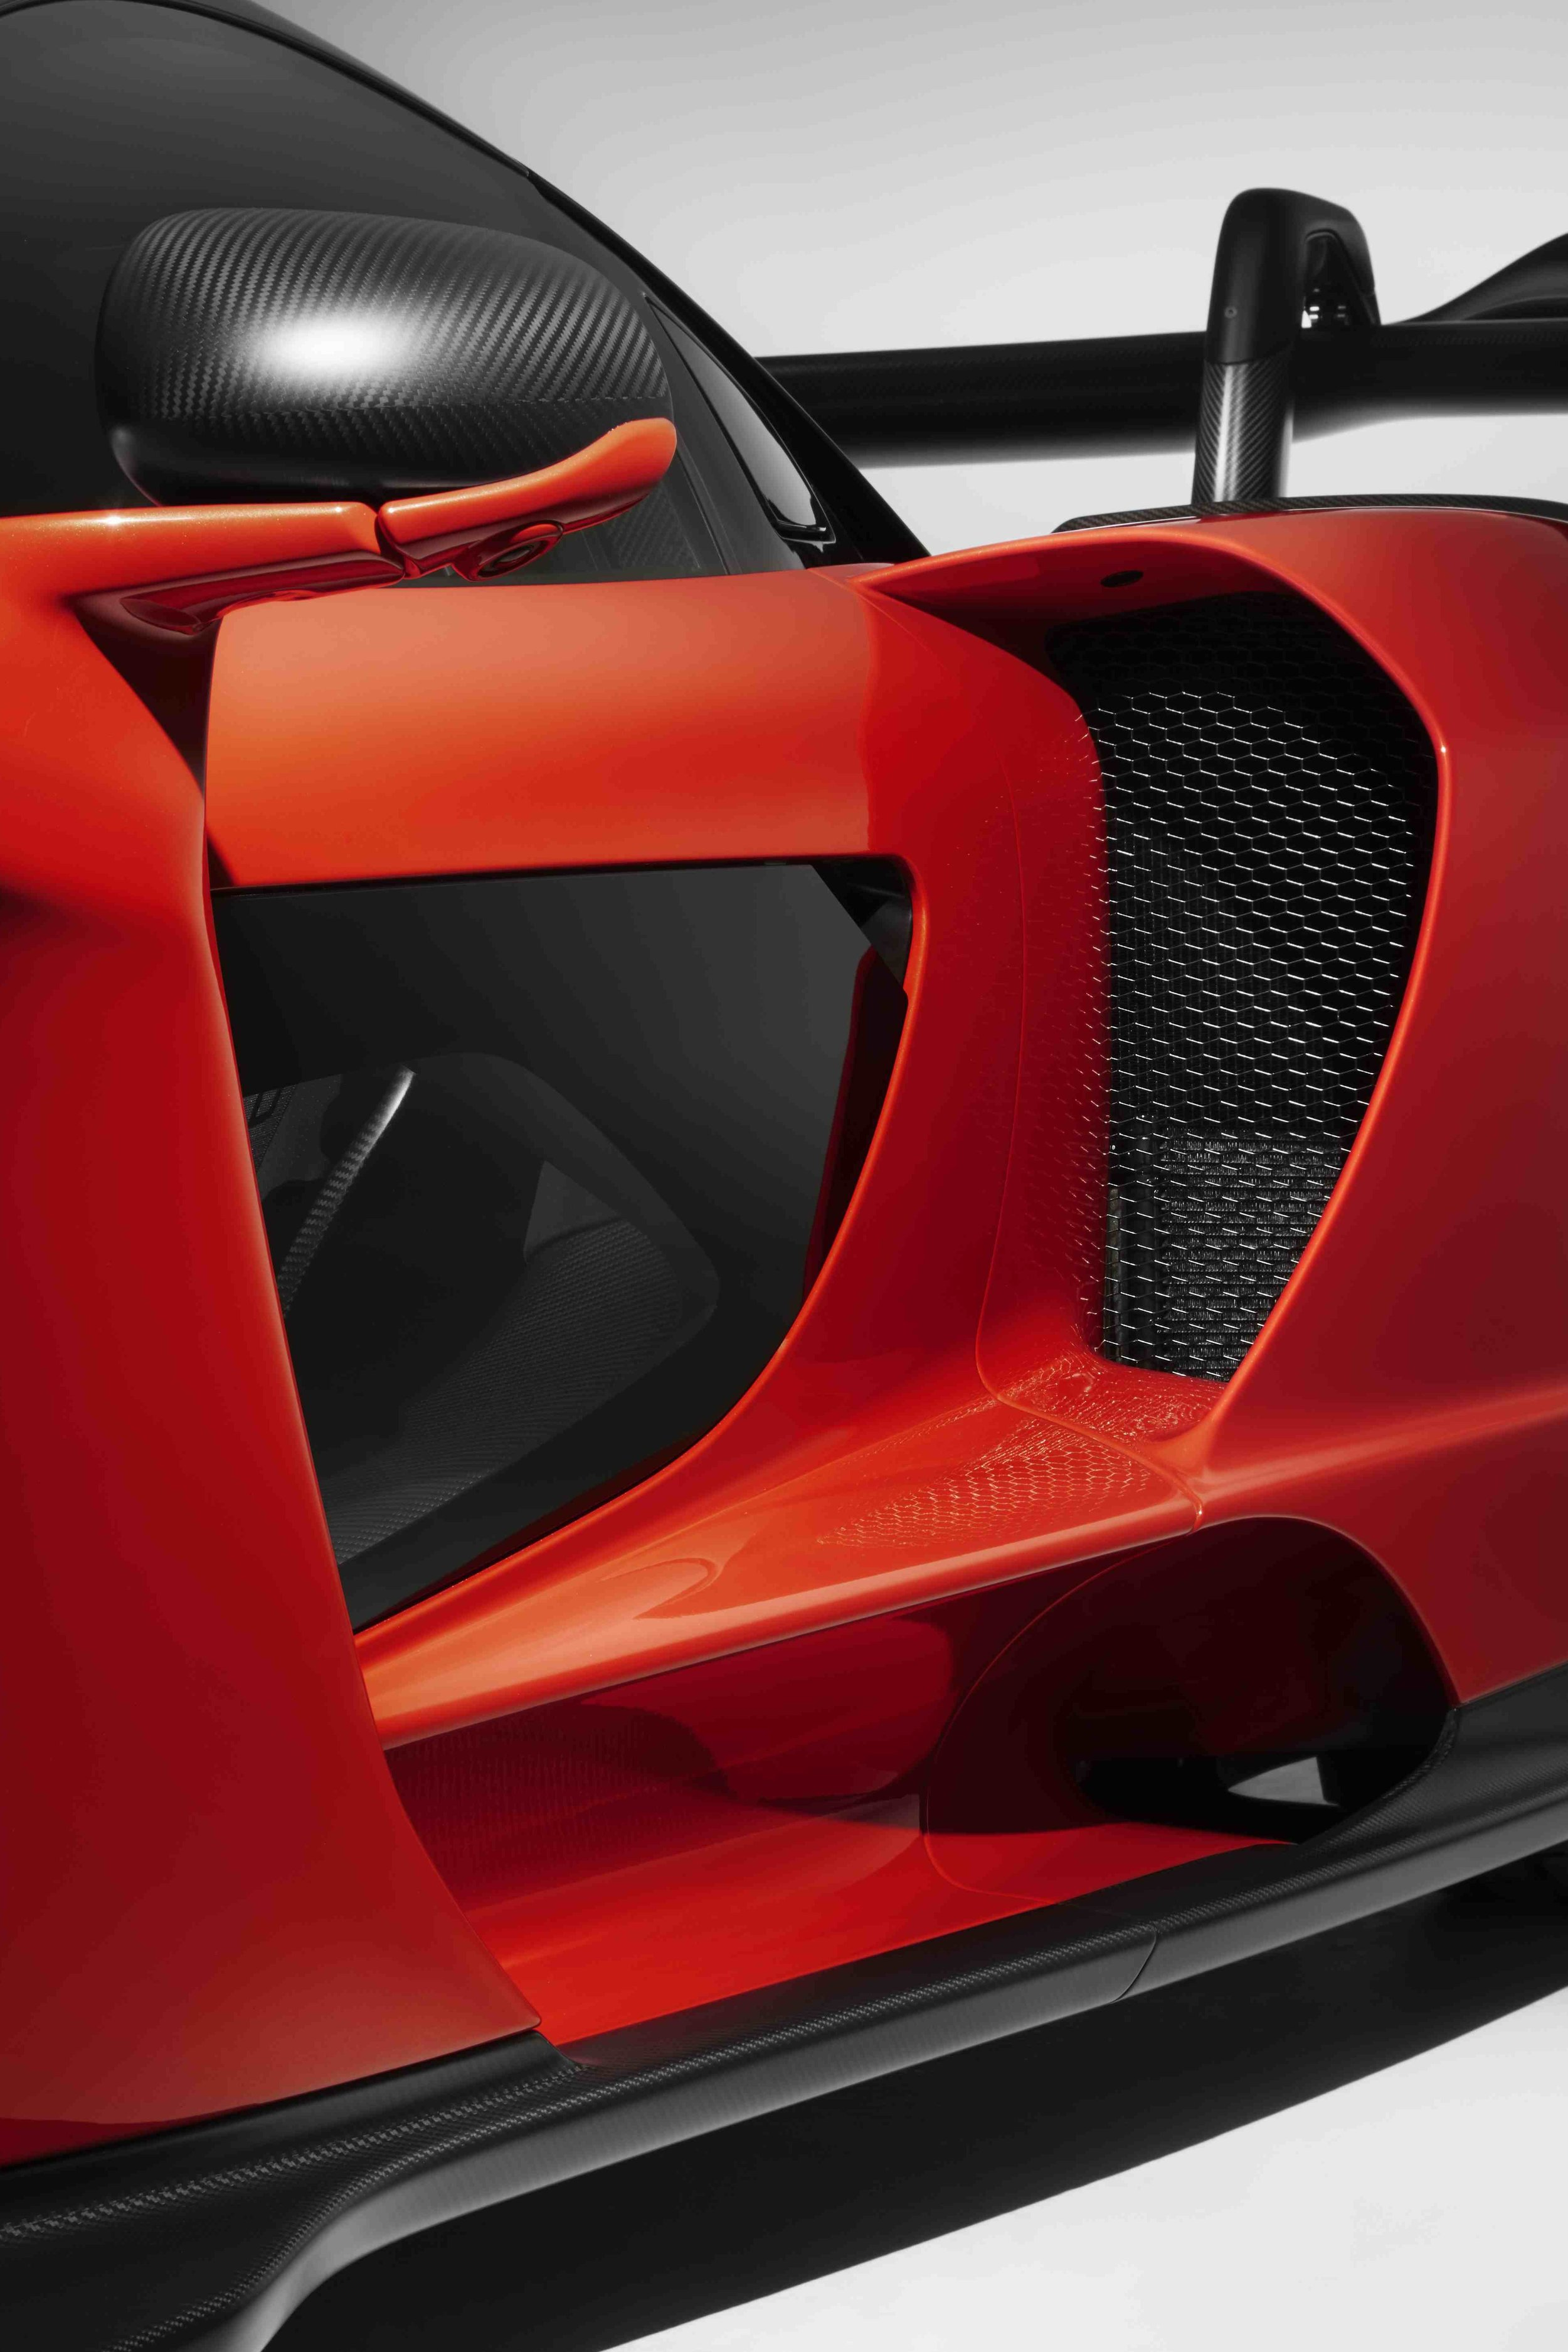 8625McLaren-Senna--side-intake-and-door-strake.jpg